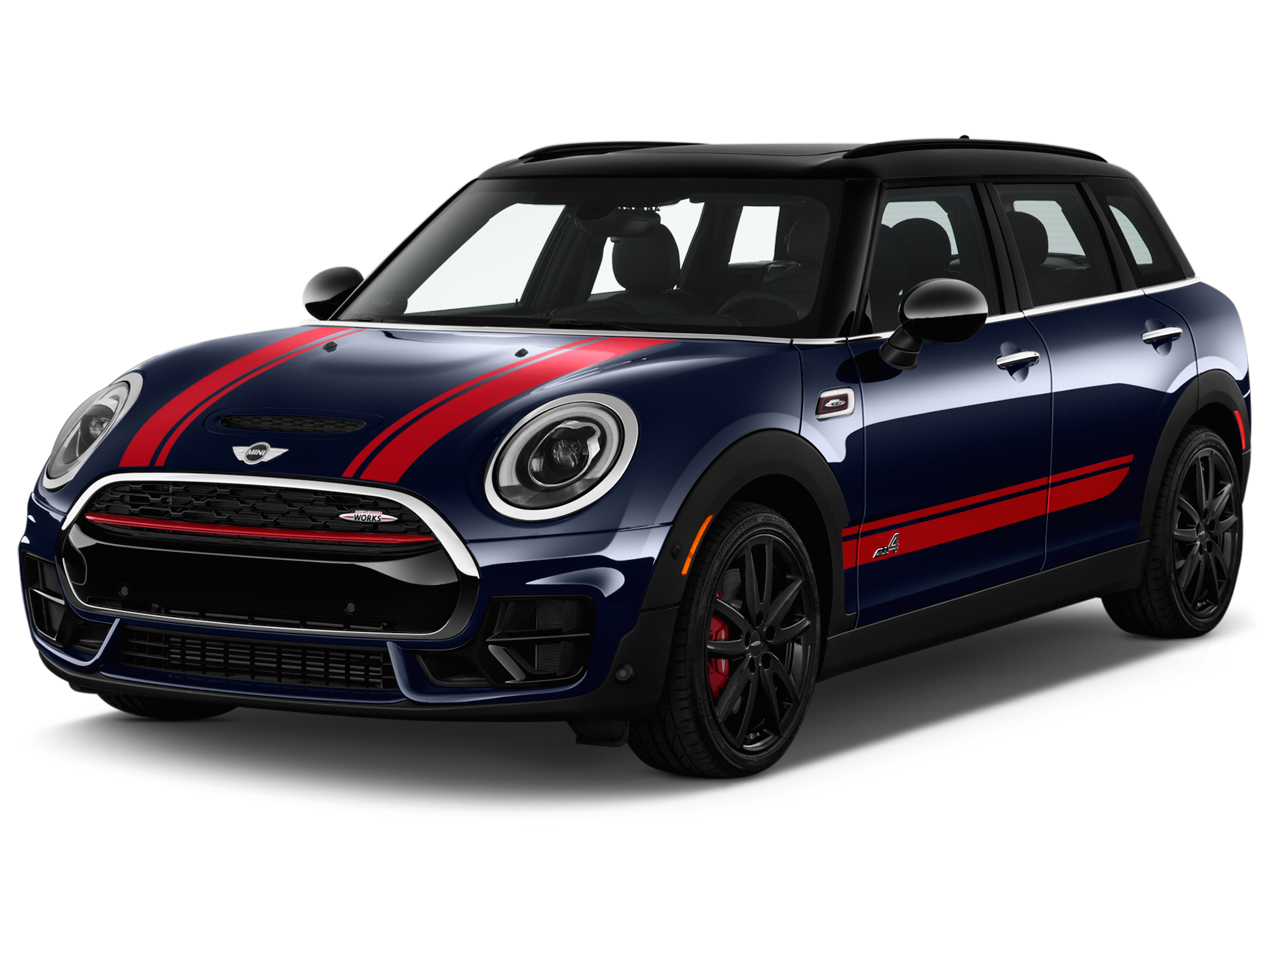 2017 mini clubman review, ratings, specs, prices, and photos - the